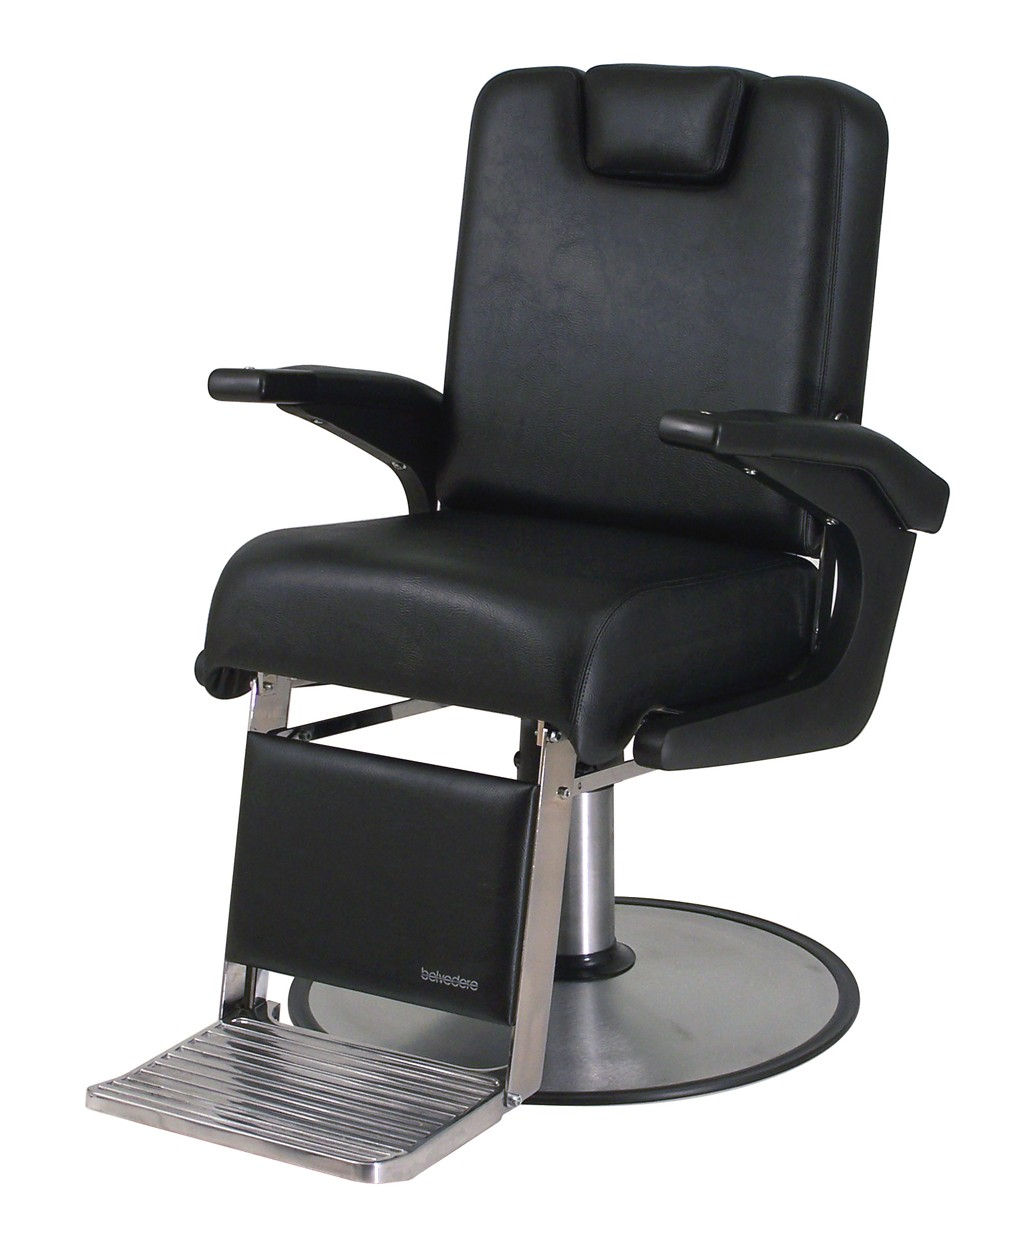 Belvedere A61A Admiral Barber Chair